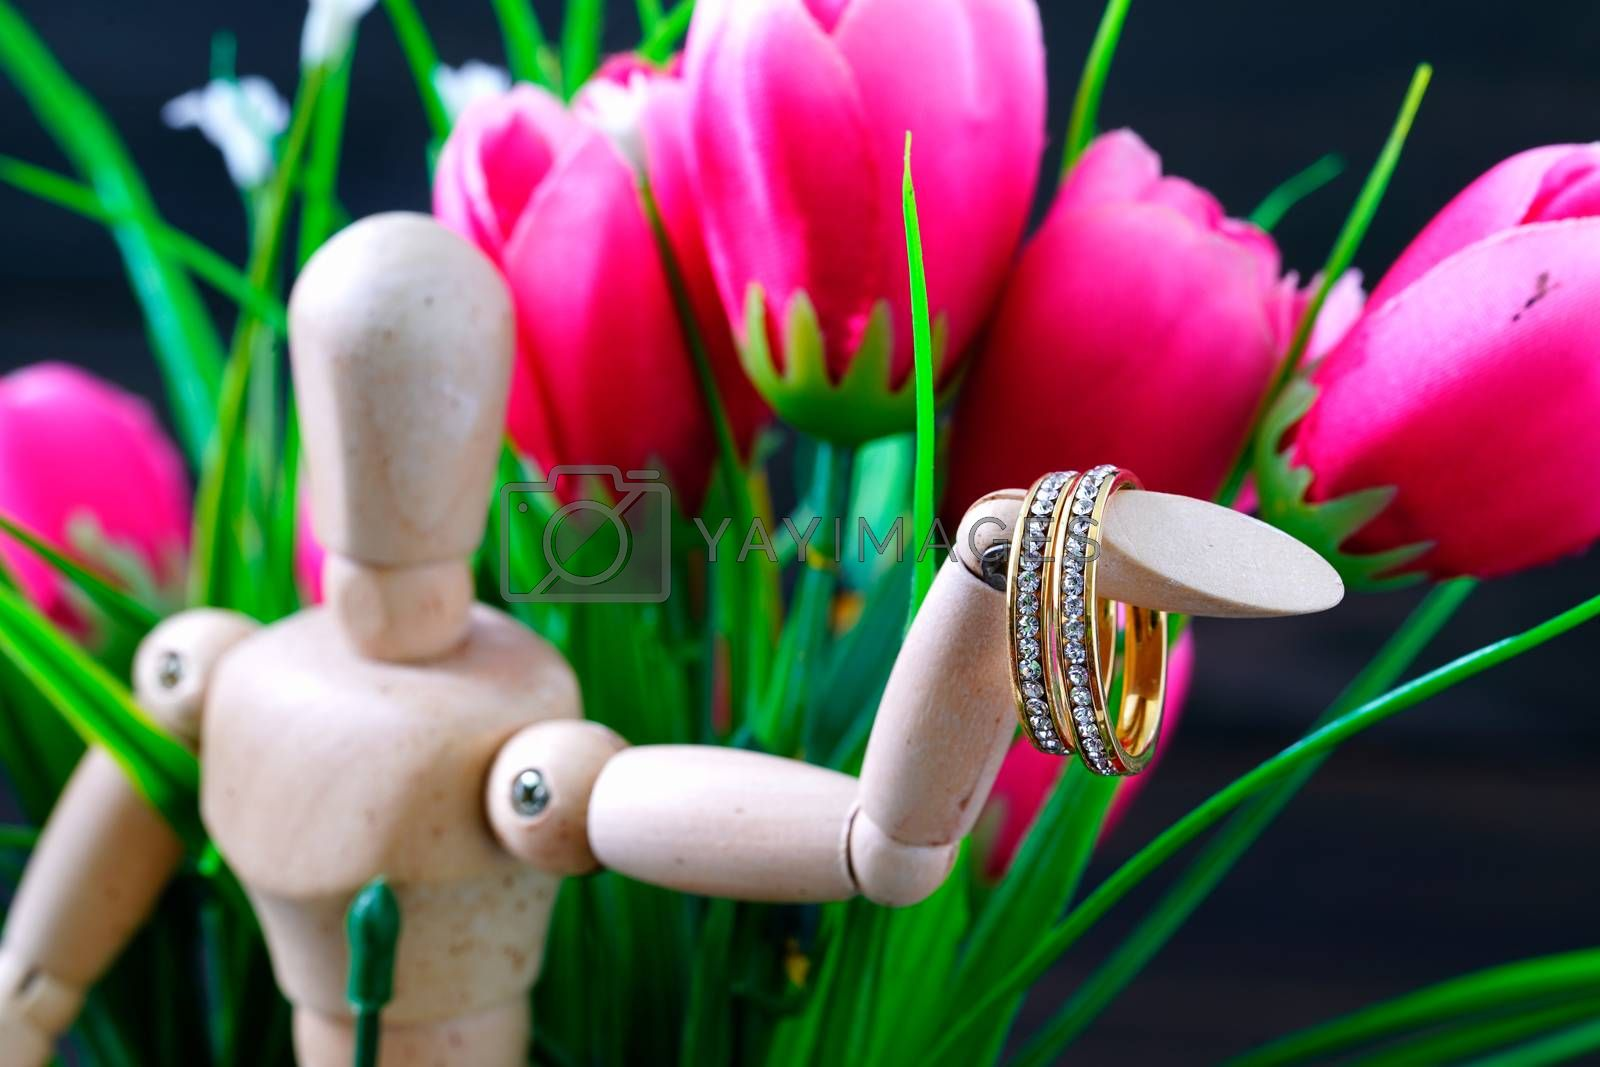 Wooden figure holding two golden wedding ring resting with fake pink tulip flower